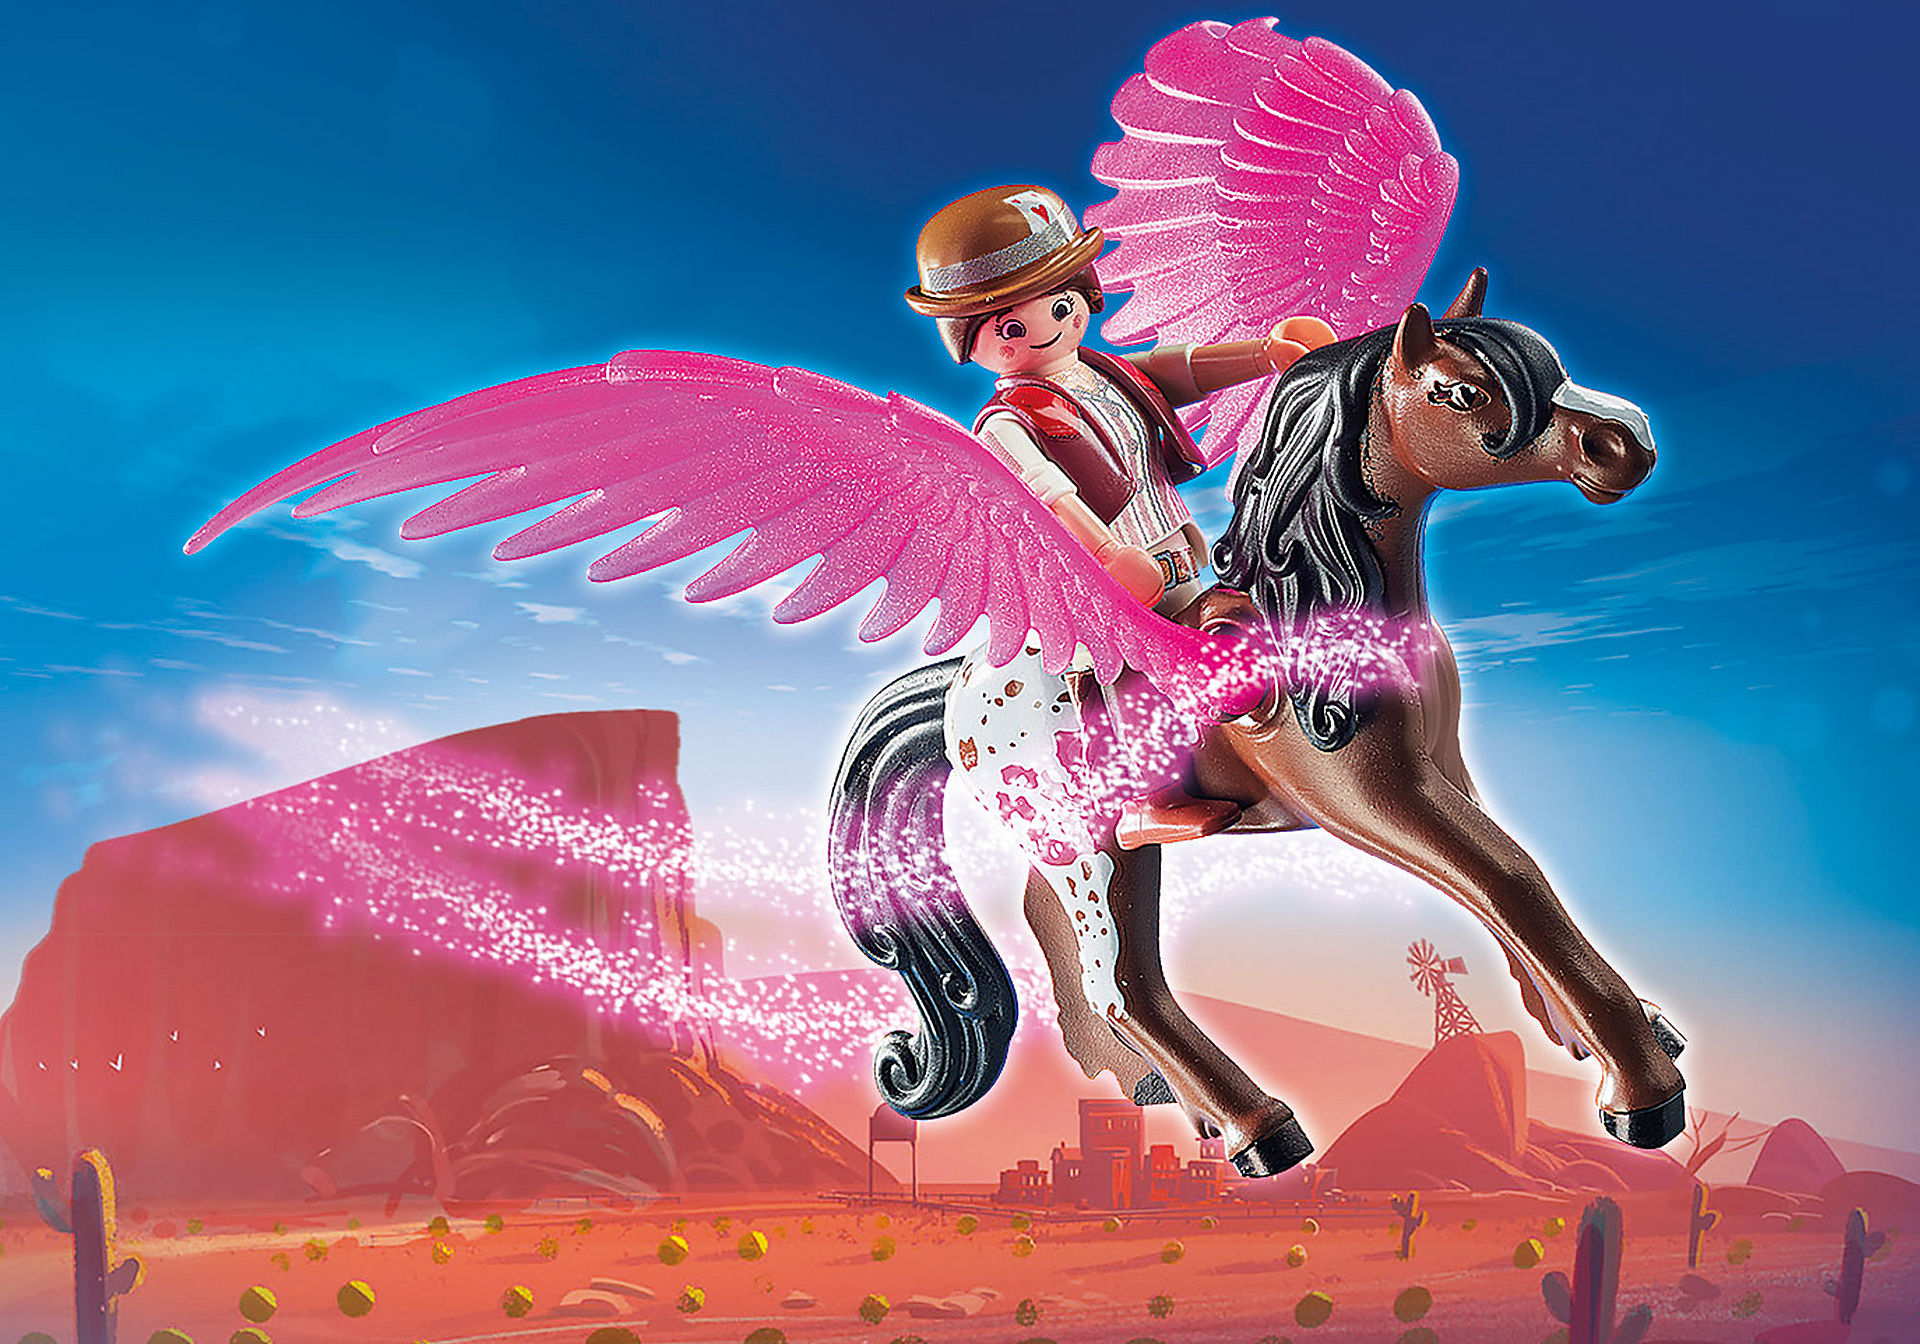 70074 PLAYMOBIL: THE MOVIE Marla, Del y Caballo con Alas zoom image4